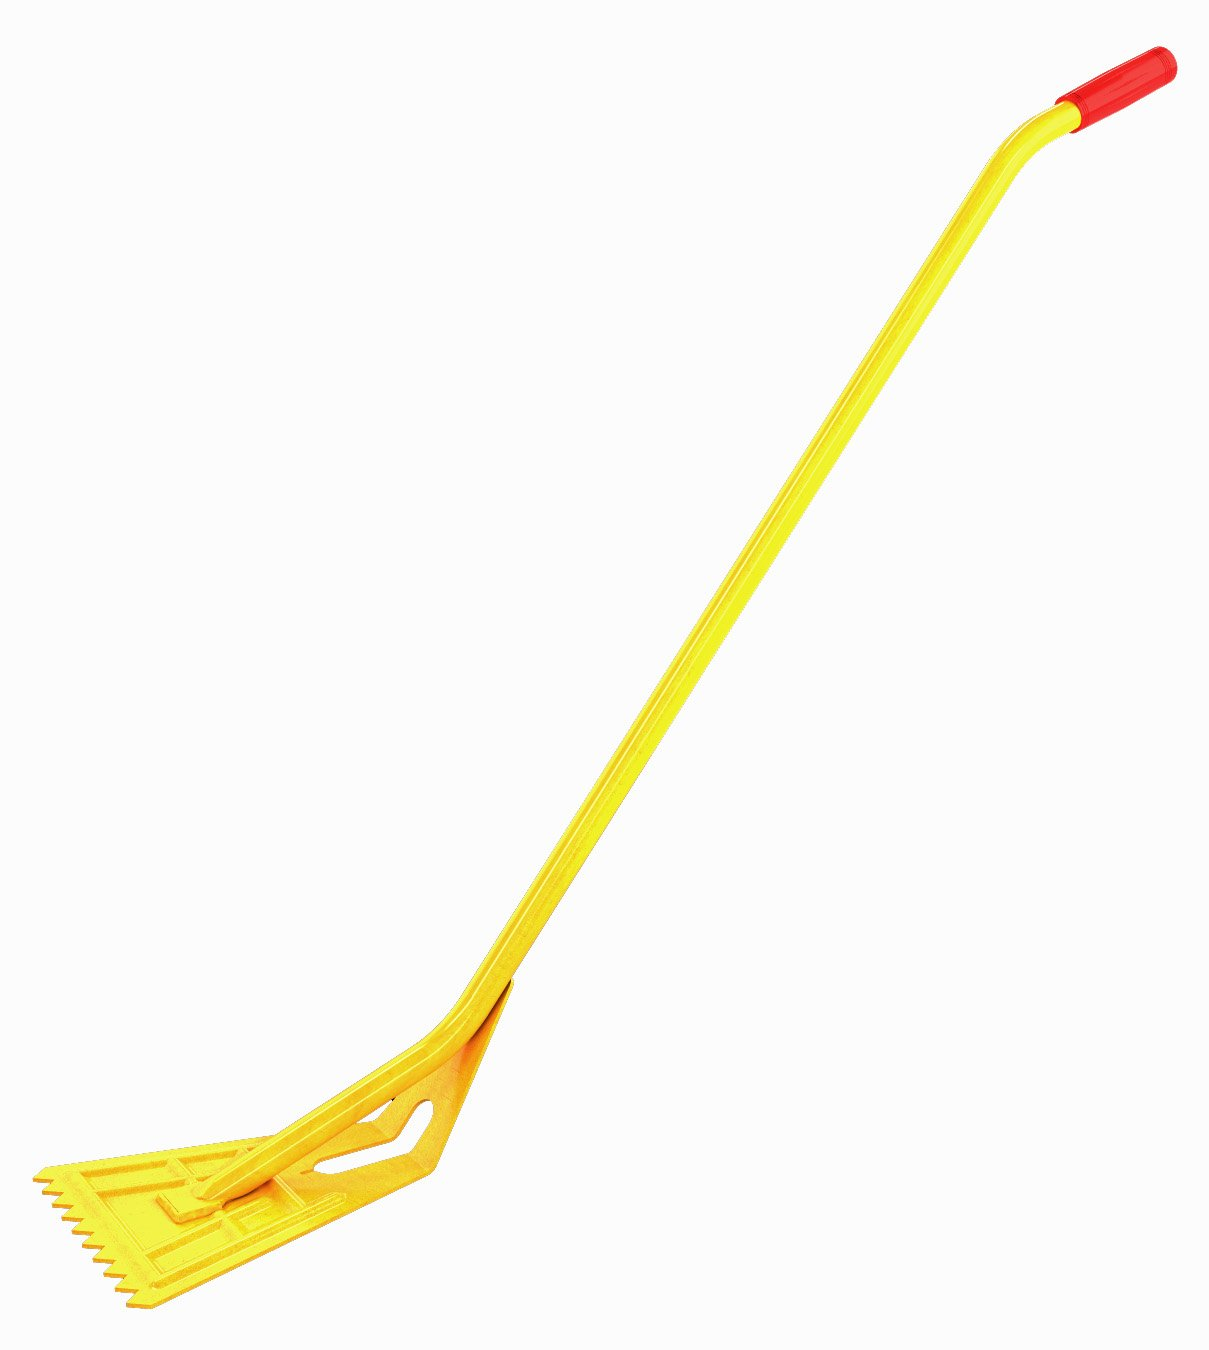 Bon 19-122 10-1/2-Inch by 10-Inch Shingle Eater Remover with 55-Inch Steel Handle by bon